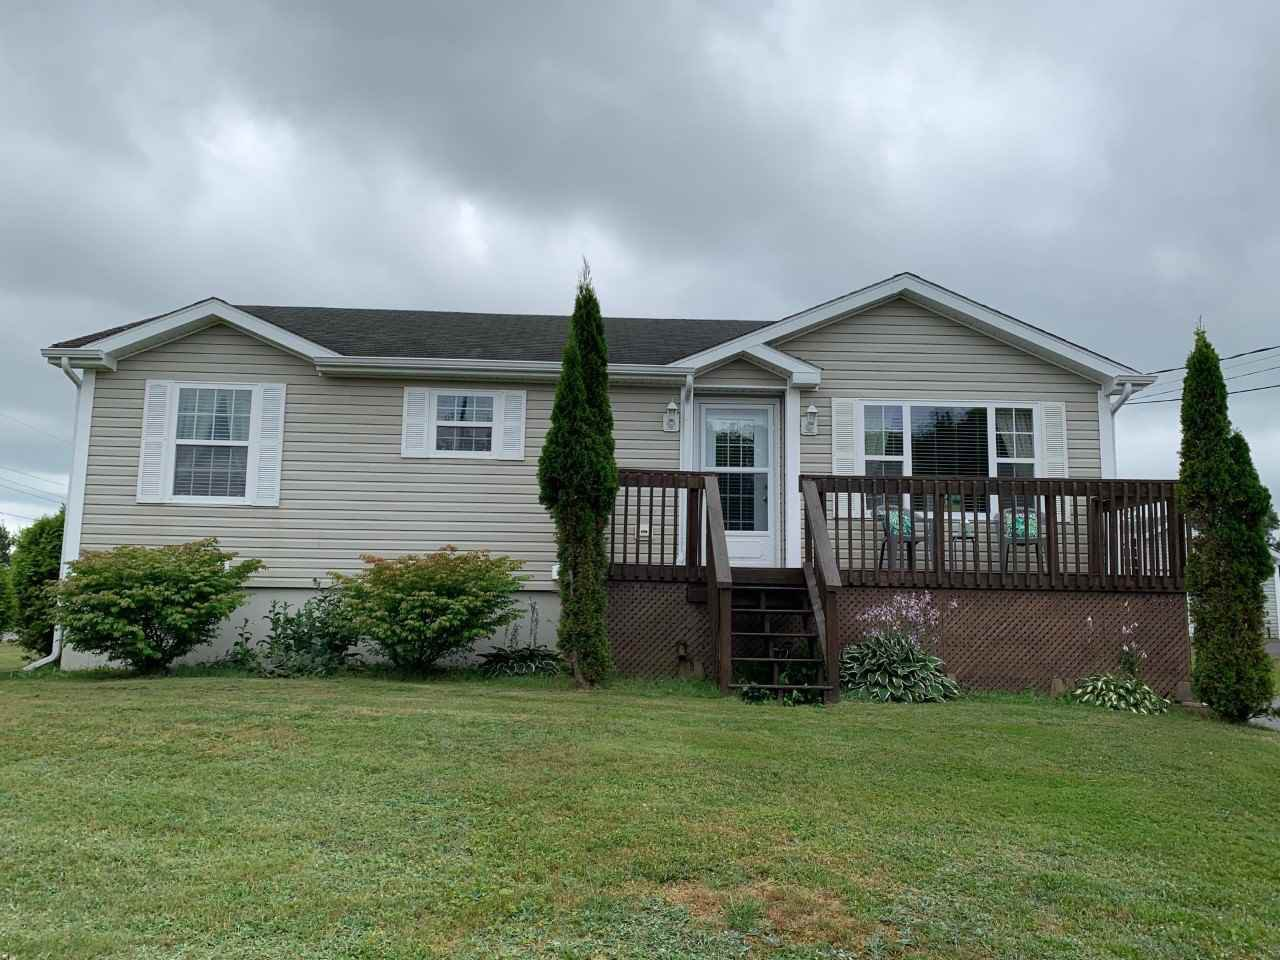 Main Photo: 31 Viggo Holm Road in Abercrombie: 108-Rural Pictou County Residential for sale (Northern Region)  : MLS®# 202016747